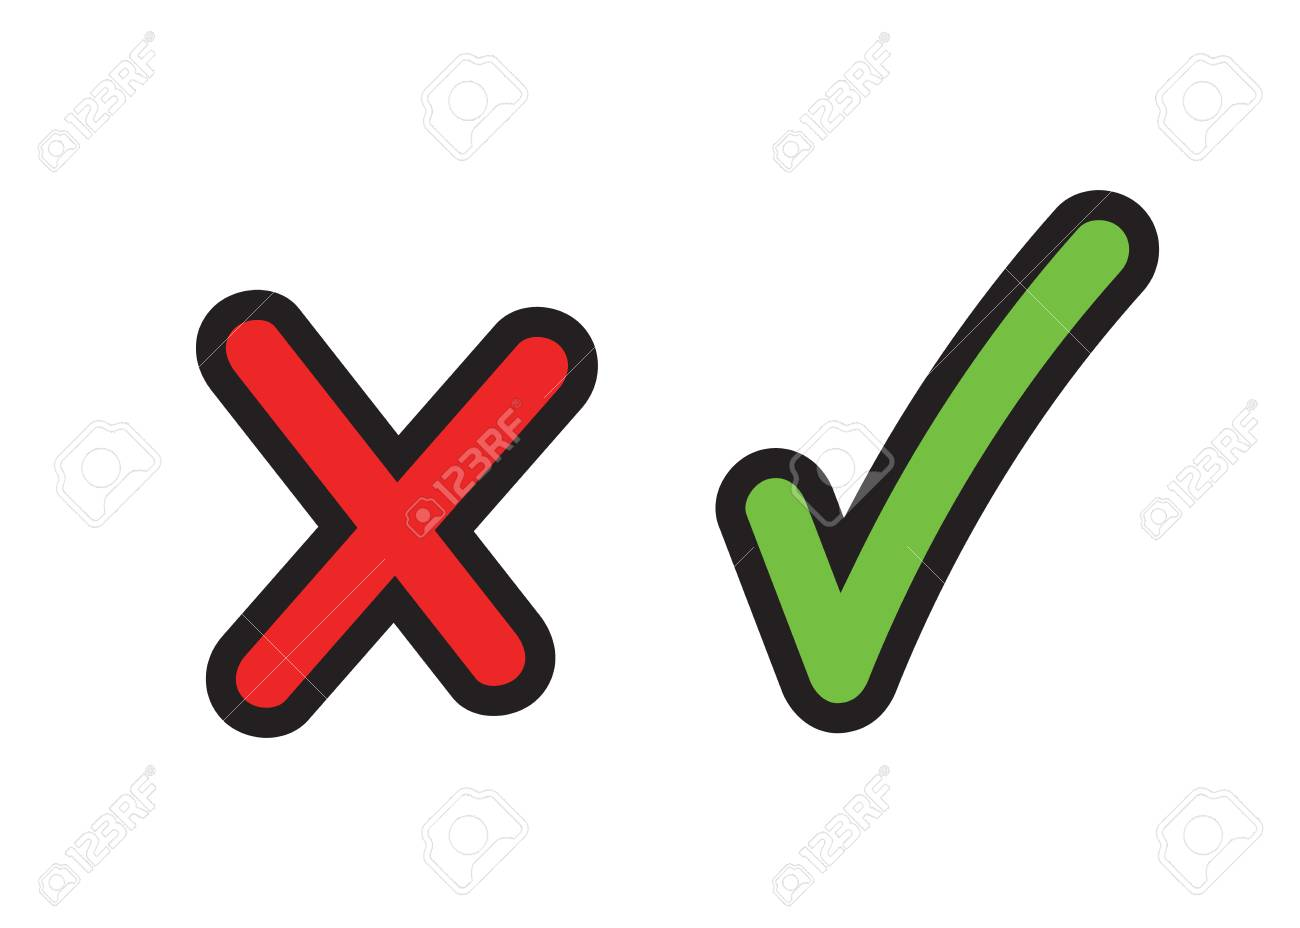 Tick and cross signs; Checkmark icons in cartoon illustration. - 88293598